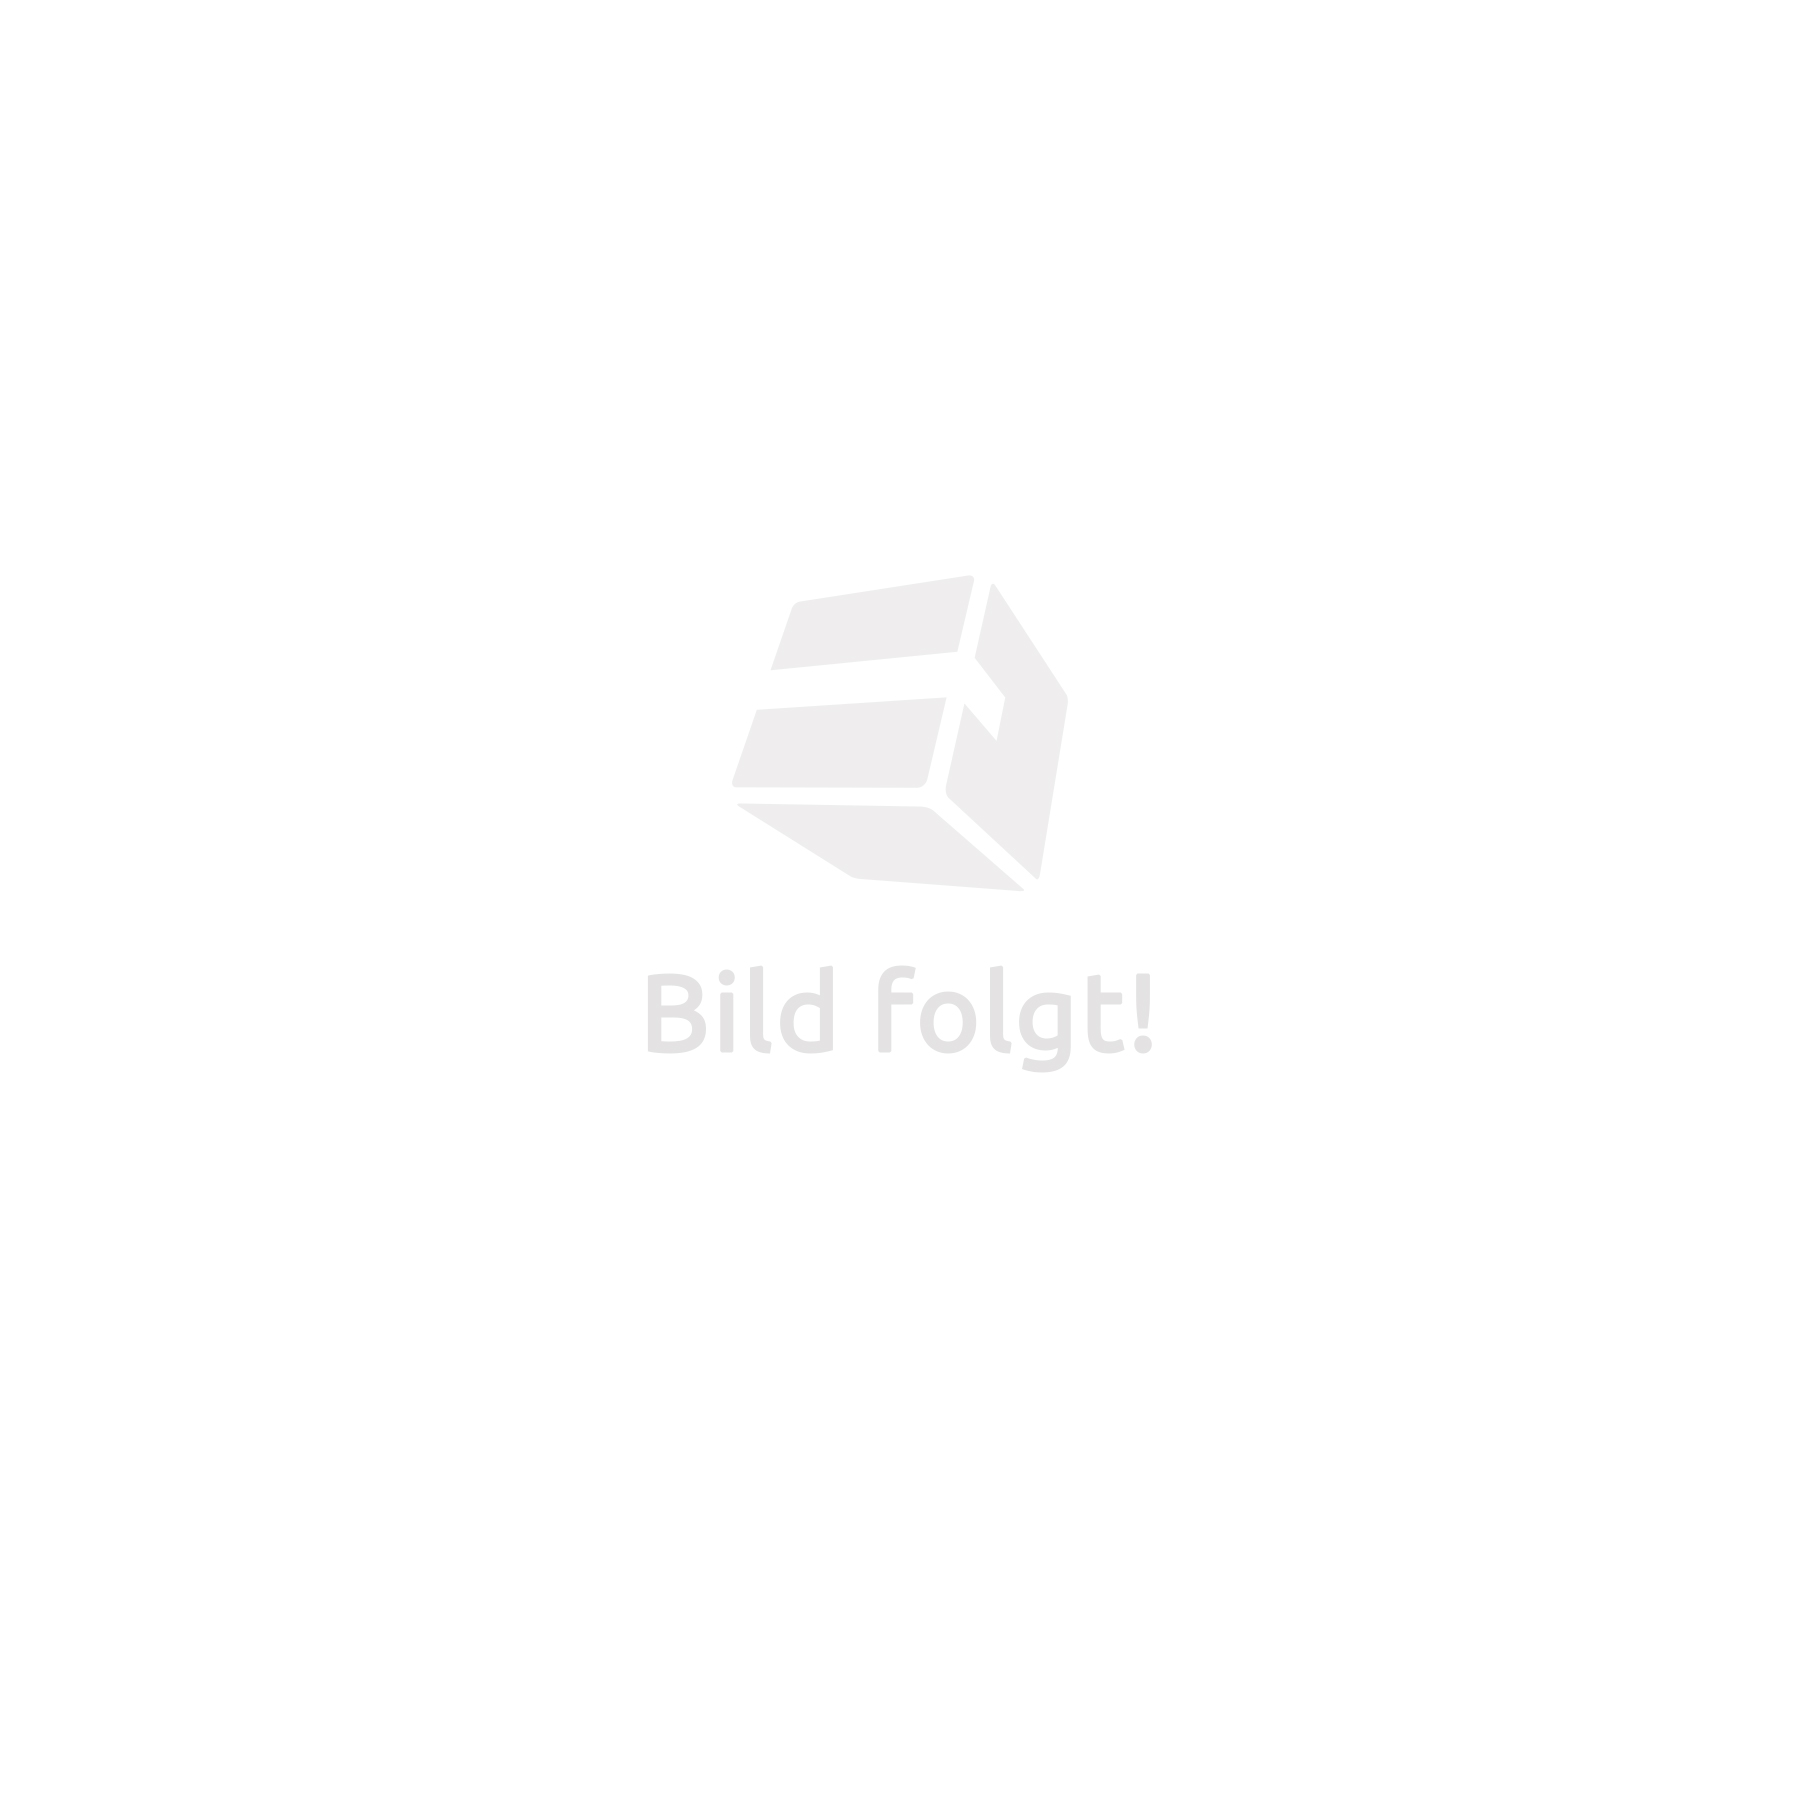 aluminium rattan luxus sitzgruppe mit 4 sessel und tisch von tectake. Black Bedroom Furniture Sets. Home Design Ideas